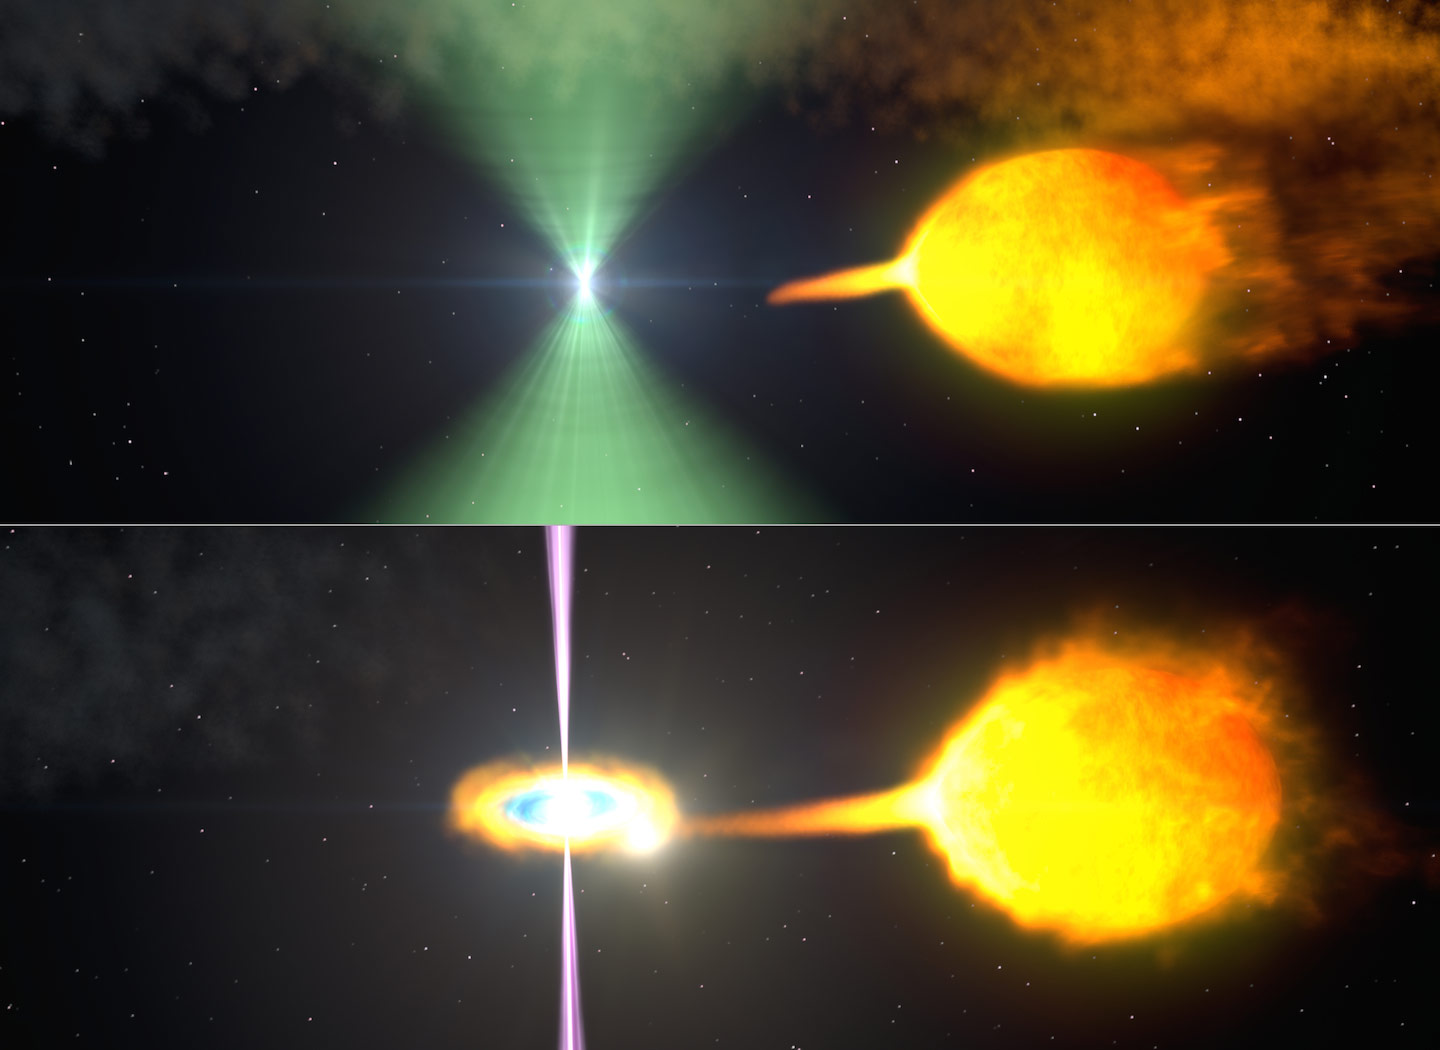 fermi discovers a pulsar that switched from radio